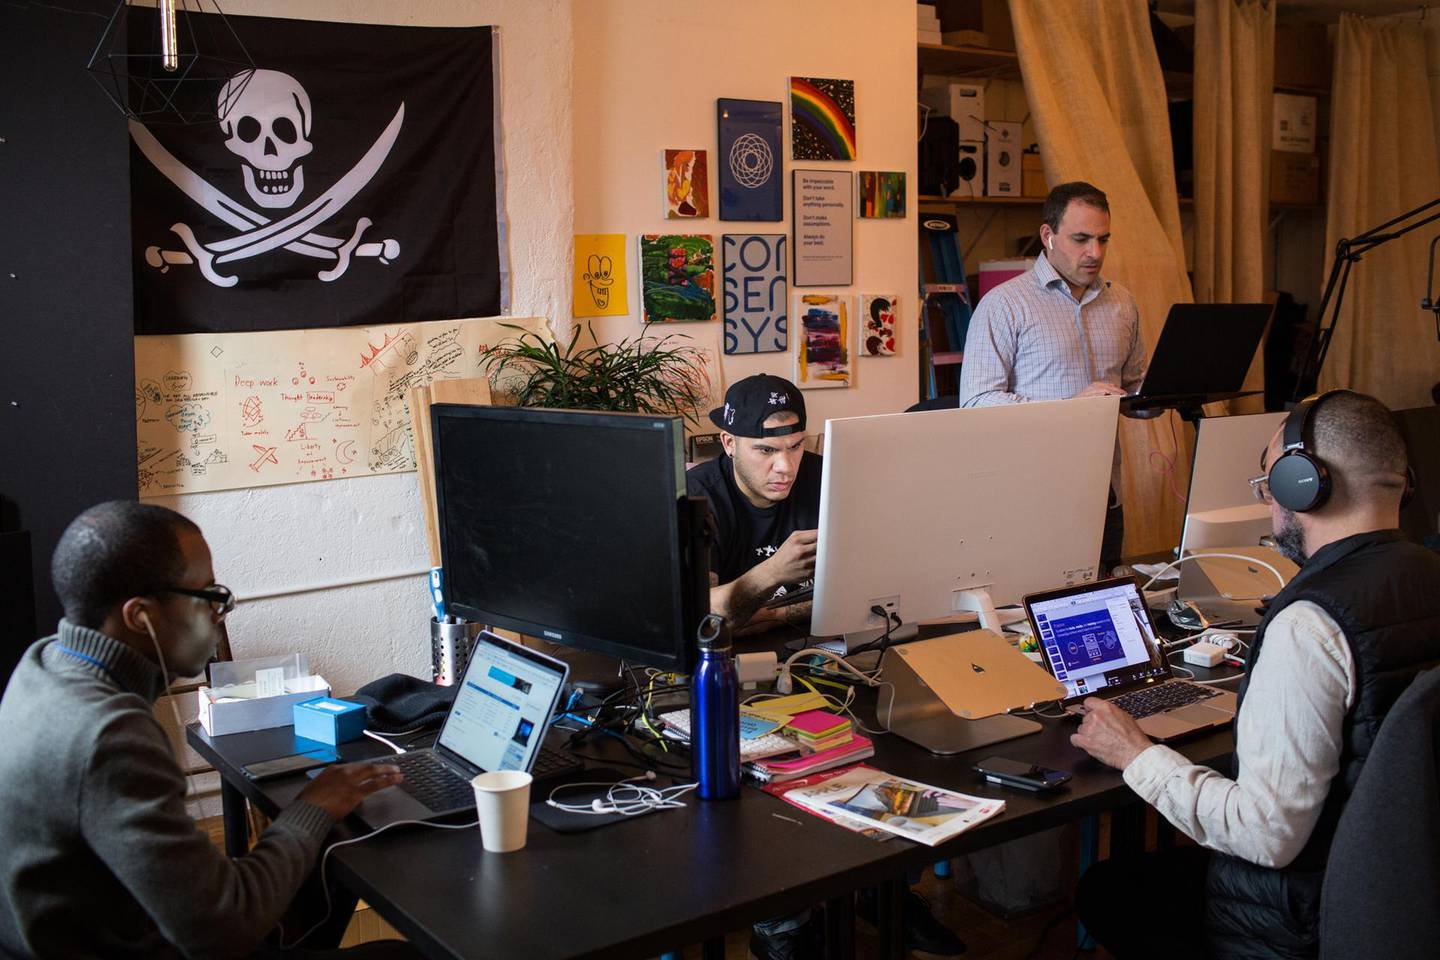 Employees work on computers at the ConsenSys Inc. office in the Brooklyn borough of New York, U.S., on Thursday, March 29, 2018. The employees ofConsenSys, the blockchain startup co-created by Ethereum guruJoseph Lubin, have taken over the space at 49 Bogart Street in the Bushwick neighborhood of Brooklyn. Photographer: Holly Pickett/Bloomberg